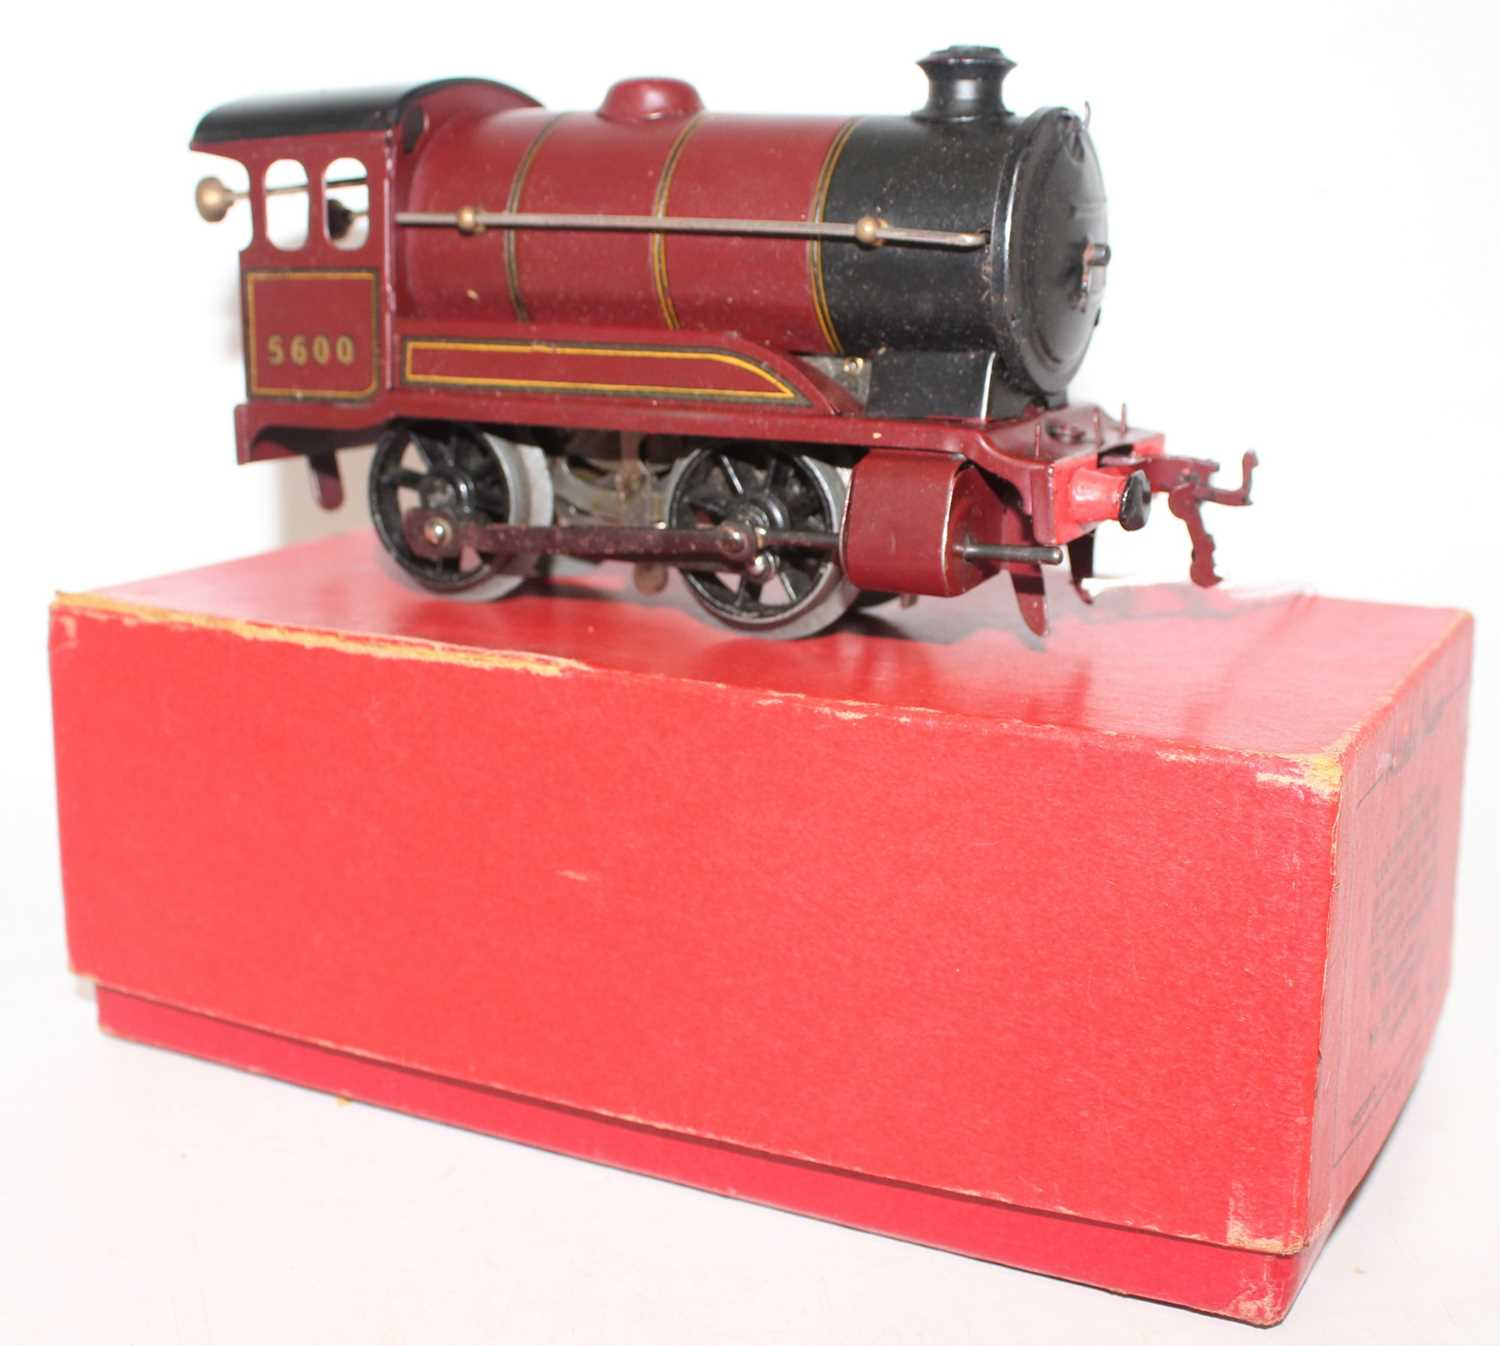 Hornby 1949-54 No.501 Clockwork Loco only, without tender, LMS Red No.5600, Sans Serif (VGNM-BGVG) - Image 2 of 3